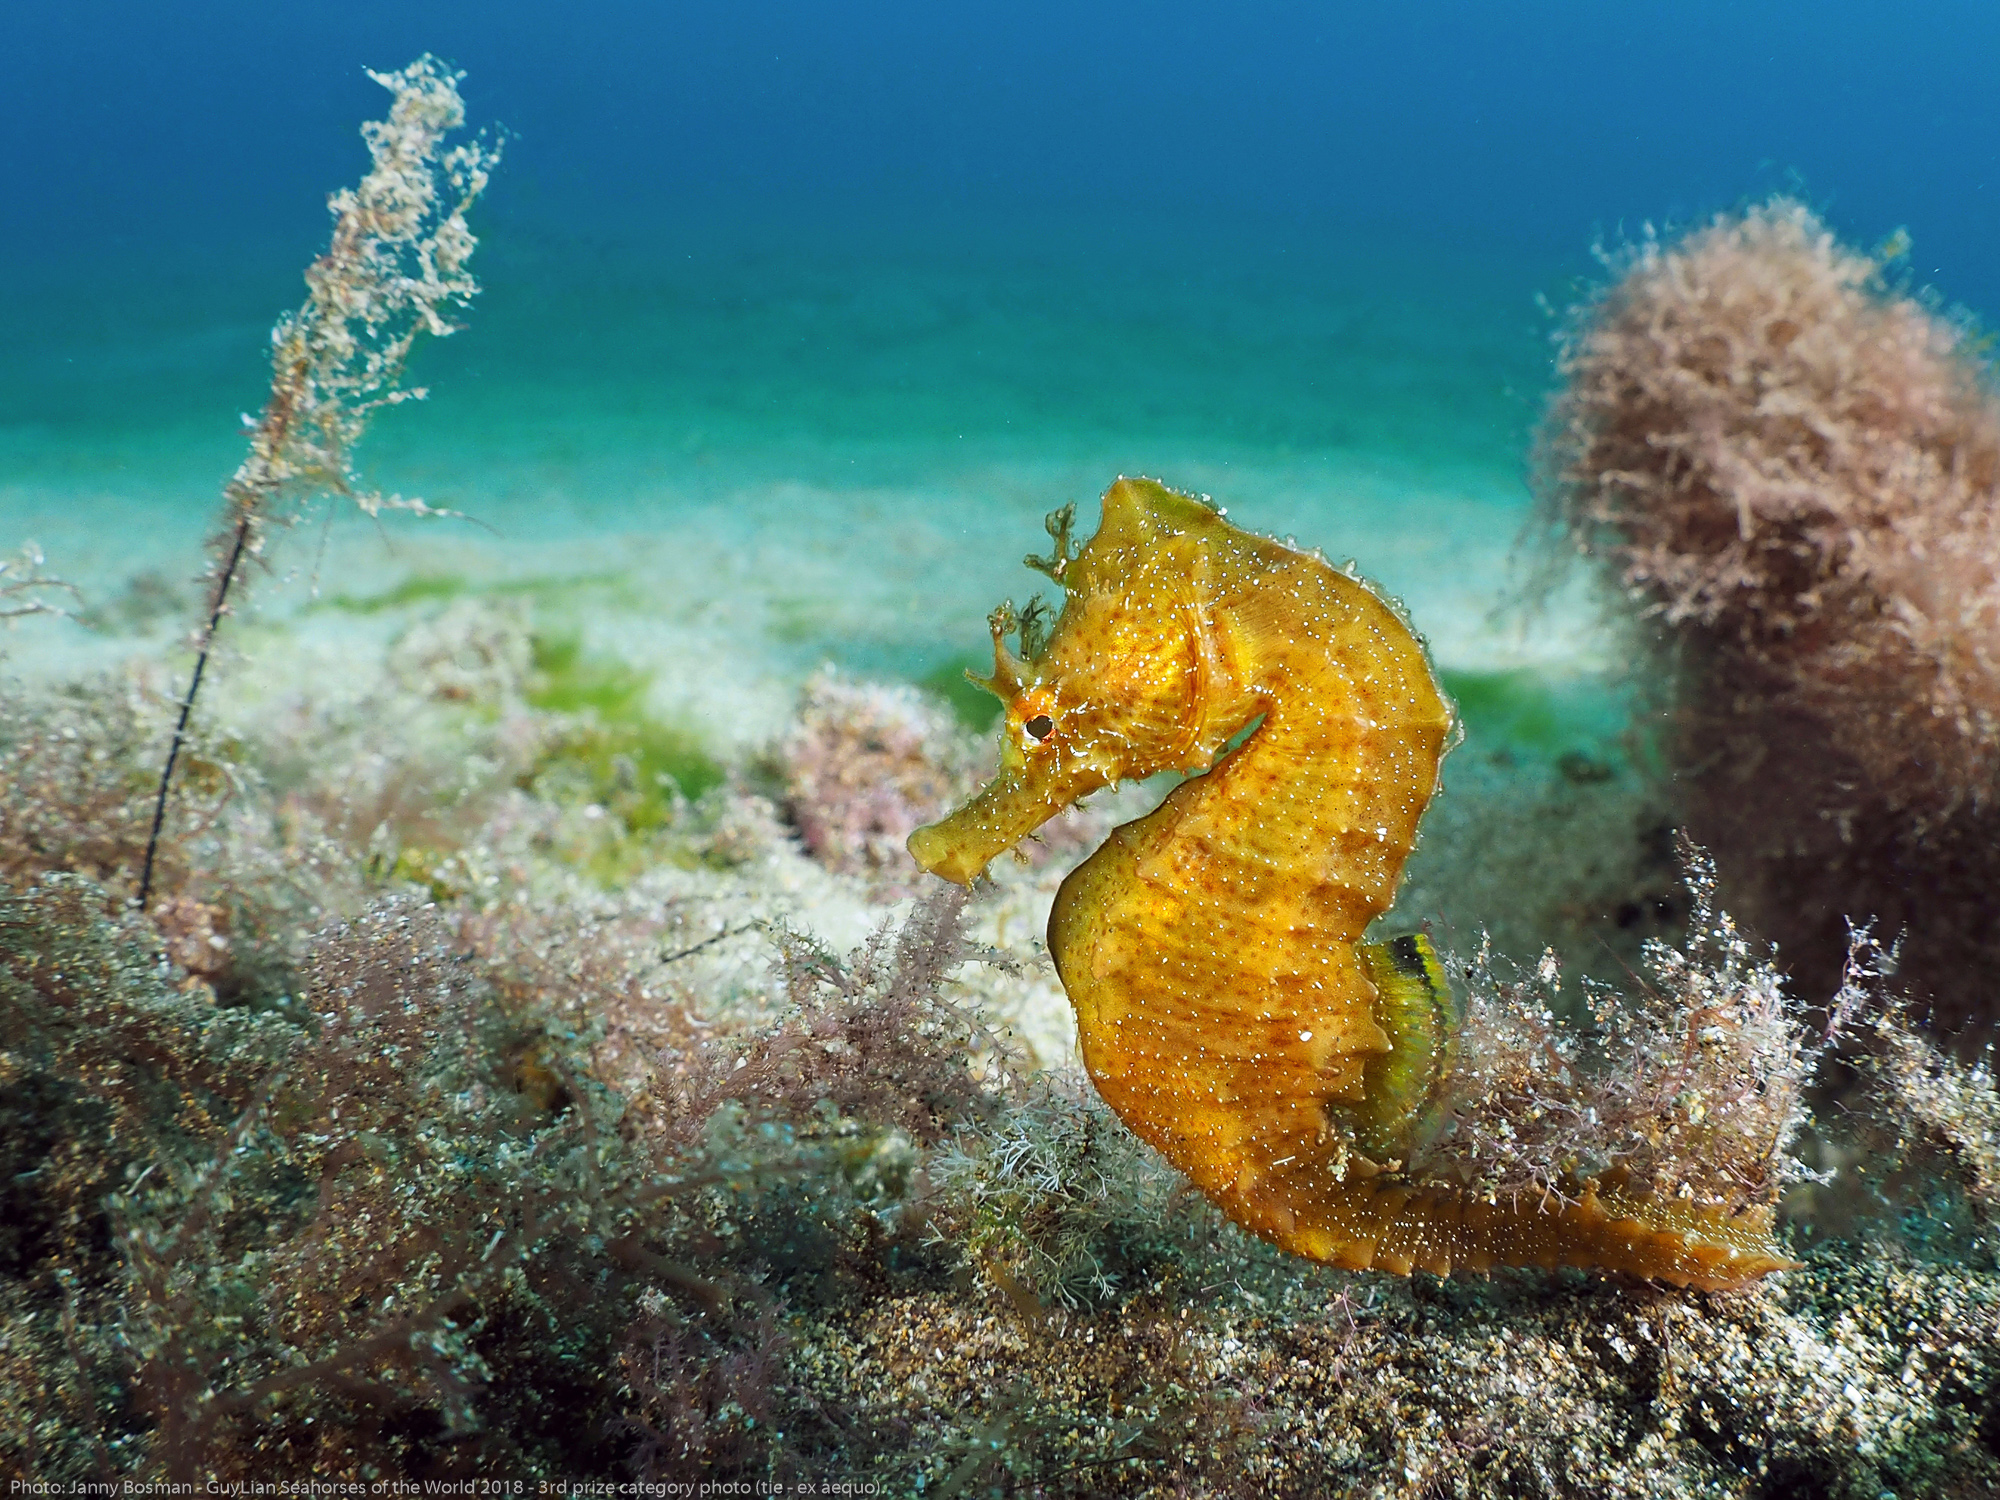 Hippocampus hippocampus.  Photo by Janny Bosman /Guylian Seahorses of the World.